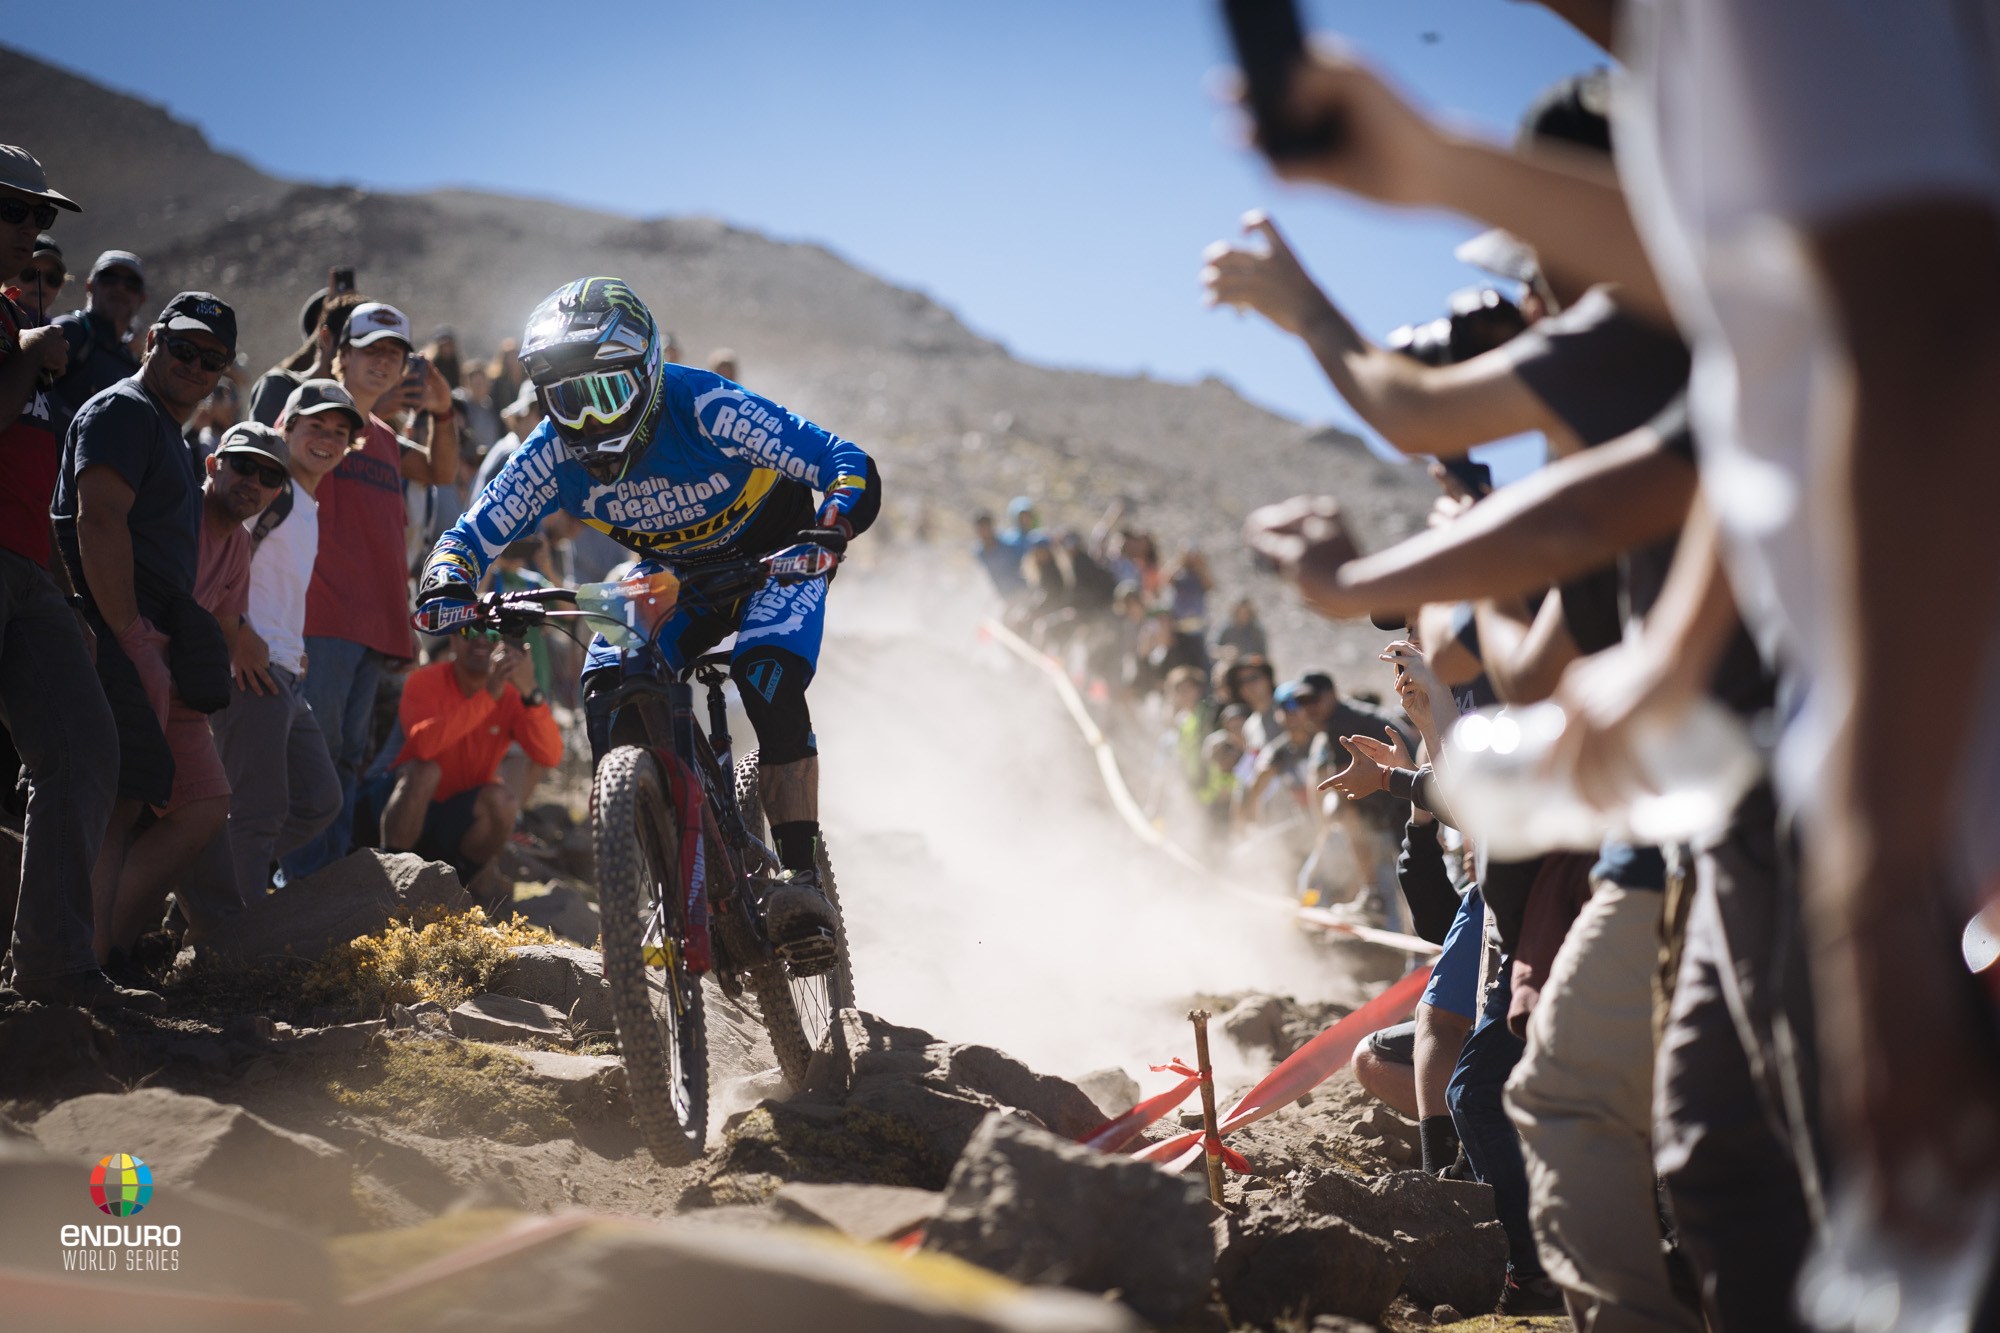 Any time Sam Hill was on track the crowd went wild!